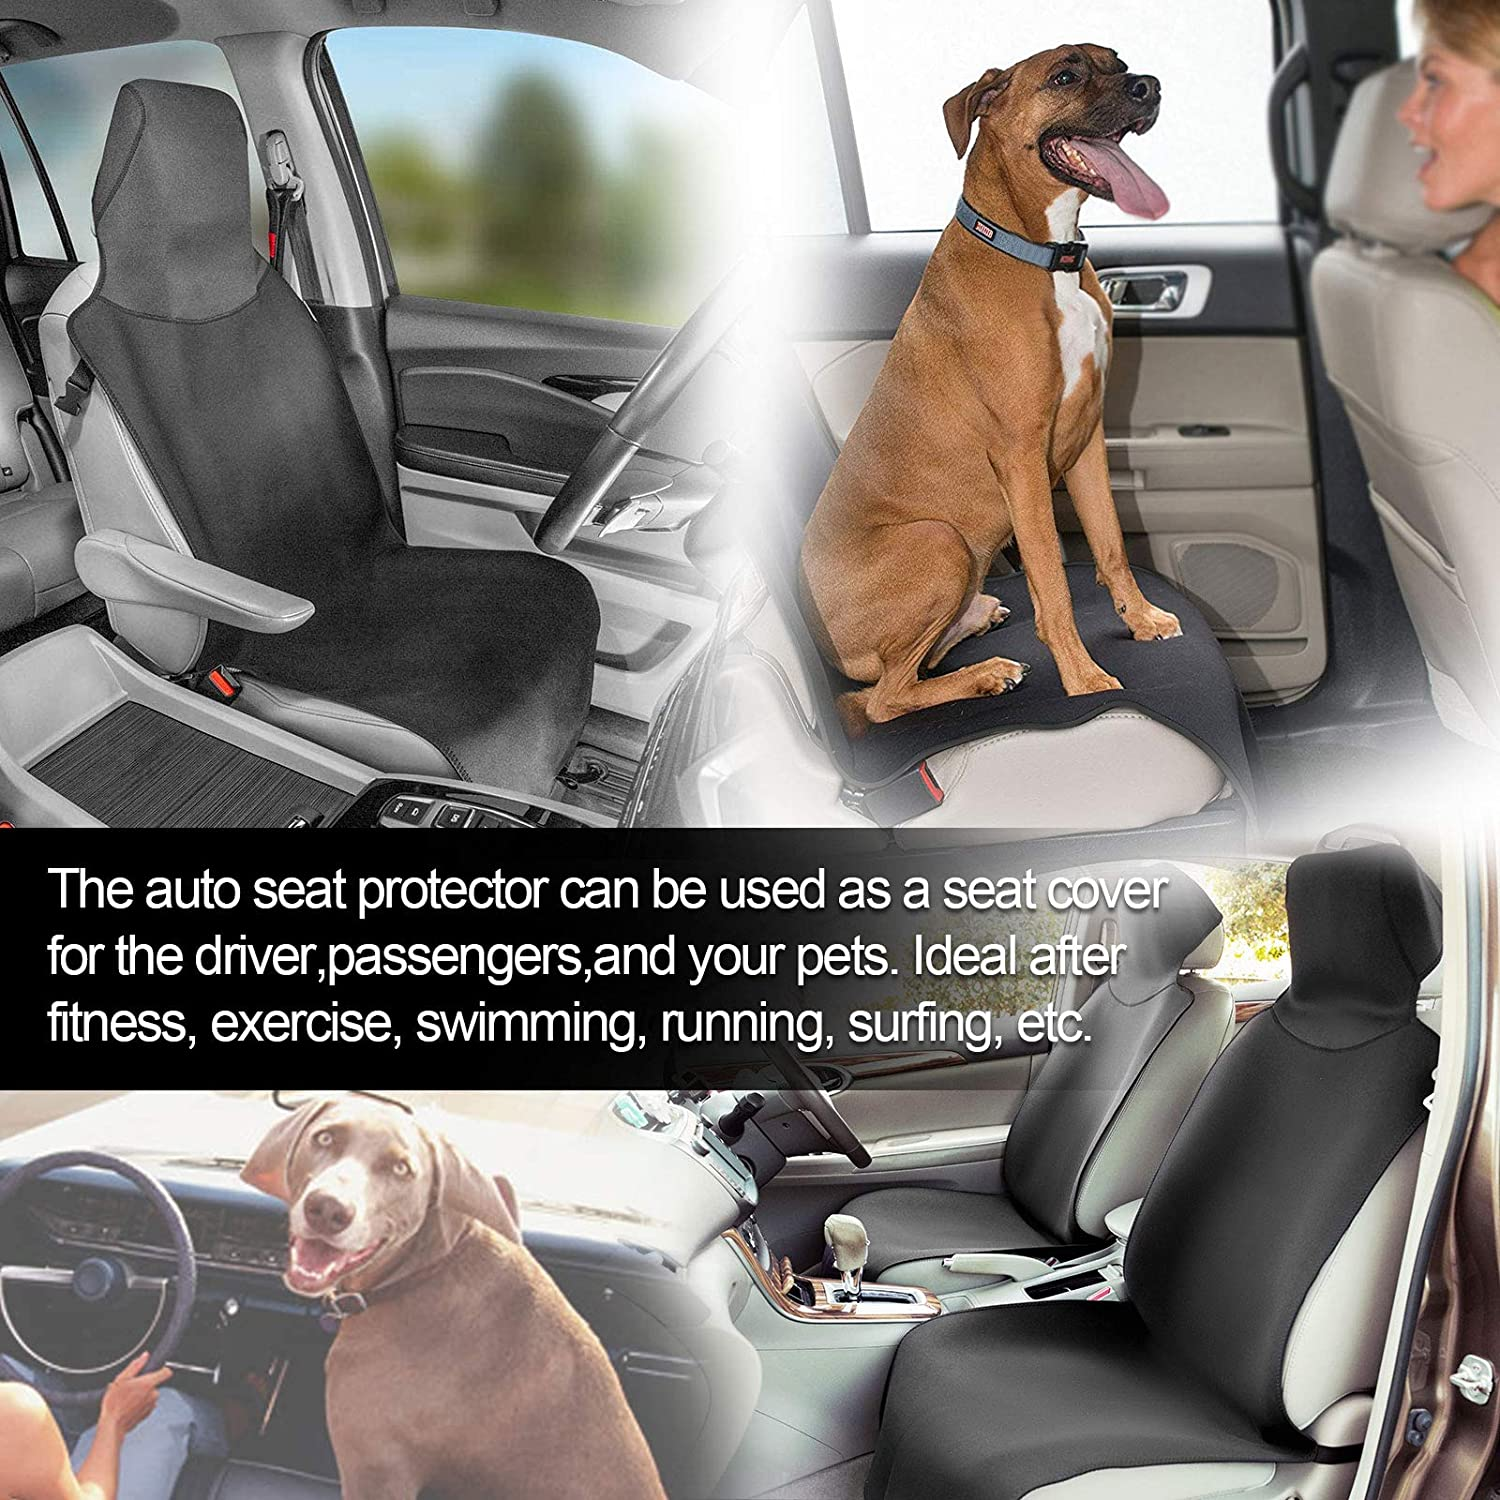 Universal Fit Sweatproof Car Seat Protector The Best Non-Slip Neoprene Vehicle Seat Cover Seat Cushion Great for Workout Waterproof Front Seat Covers Yoga Gym Running Beach and Pets Dirt